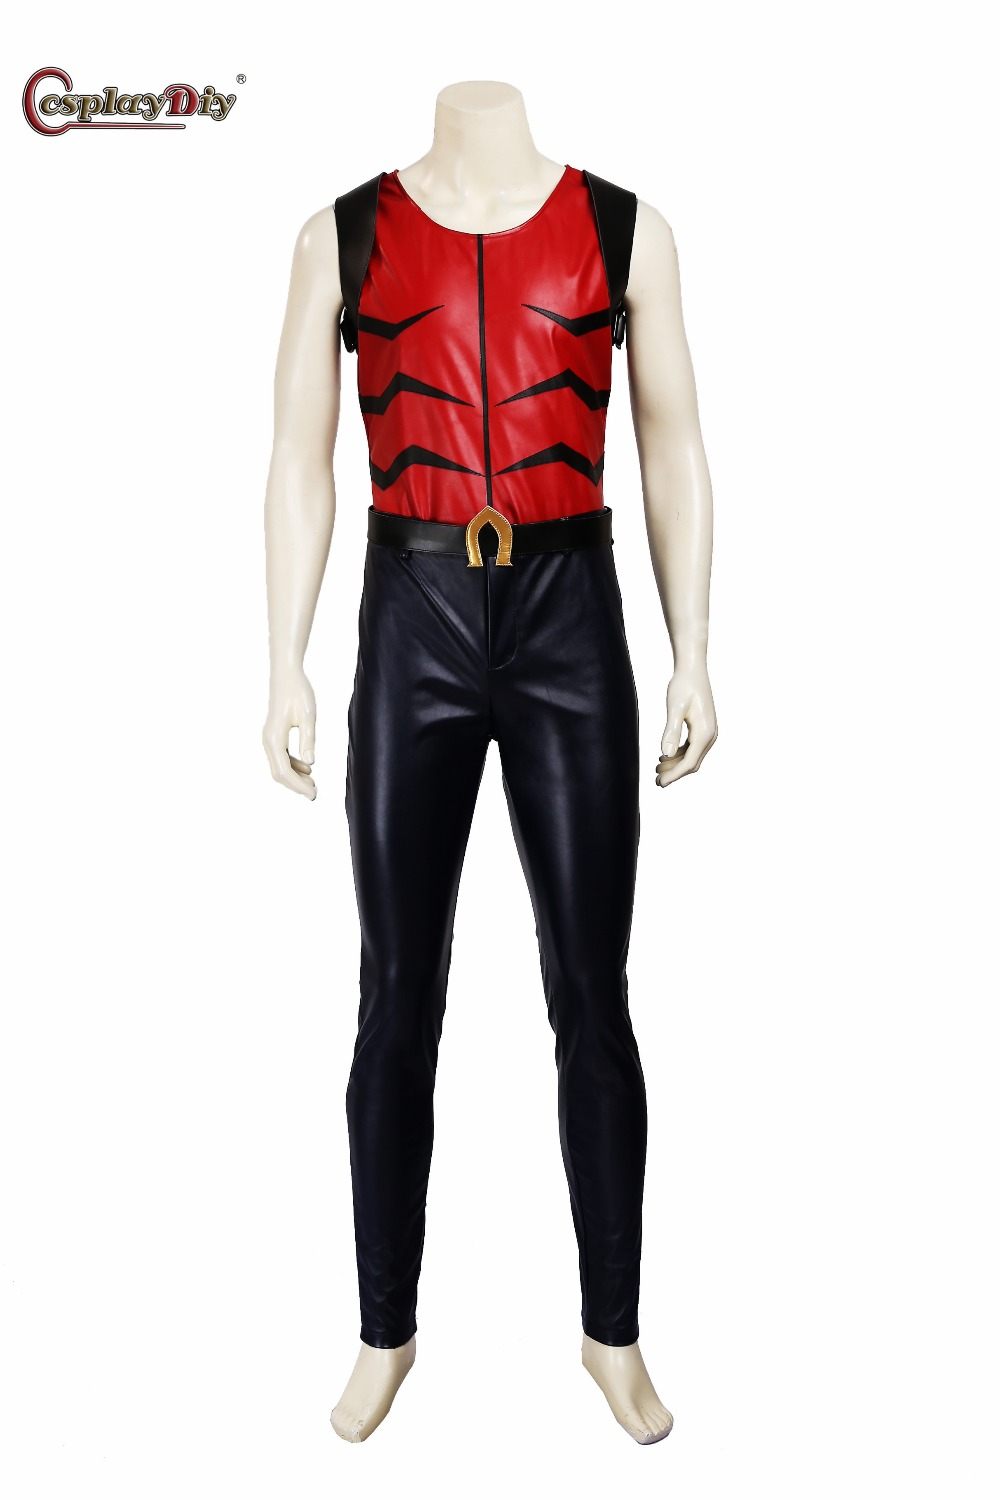 Cosplaydiy Young Justice Aqualad Costume Adult Men Halloween Carnival Cosplay Anime Young Justice Costume Custom Made J5